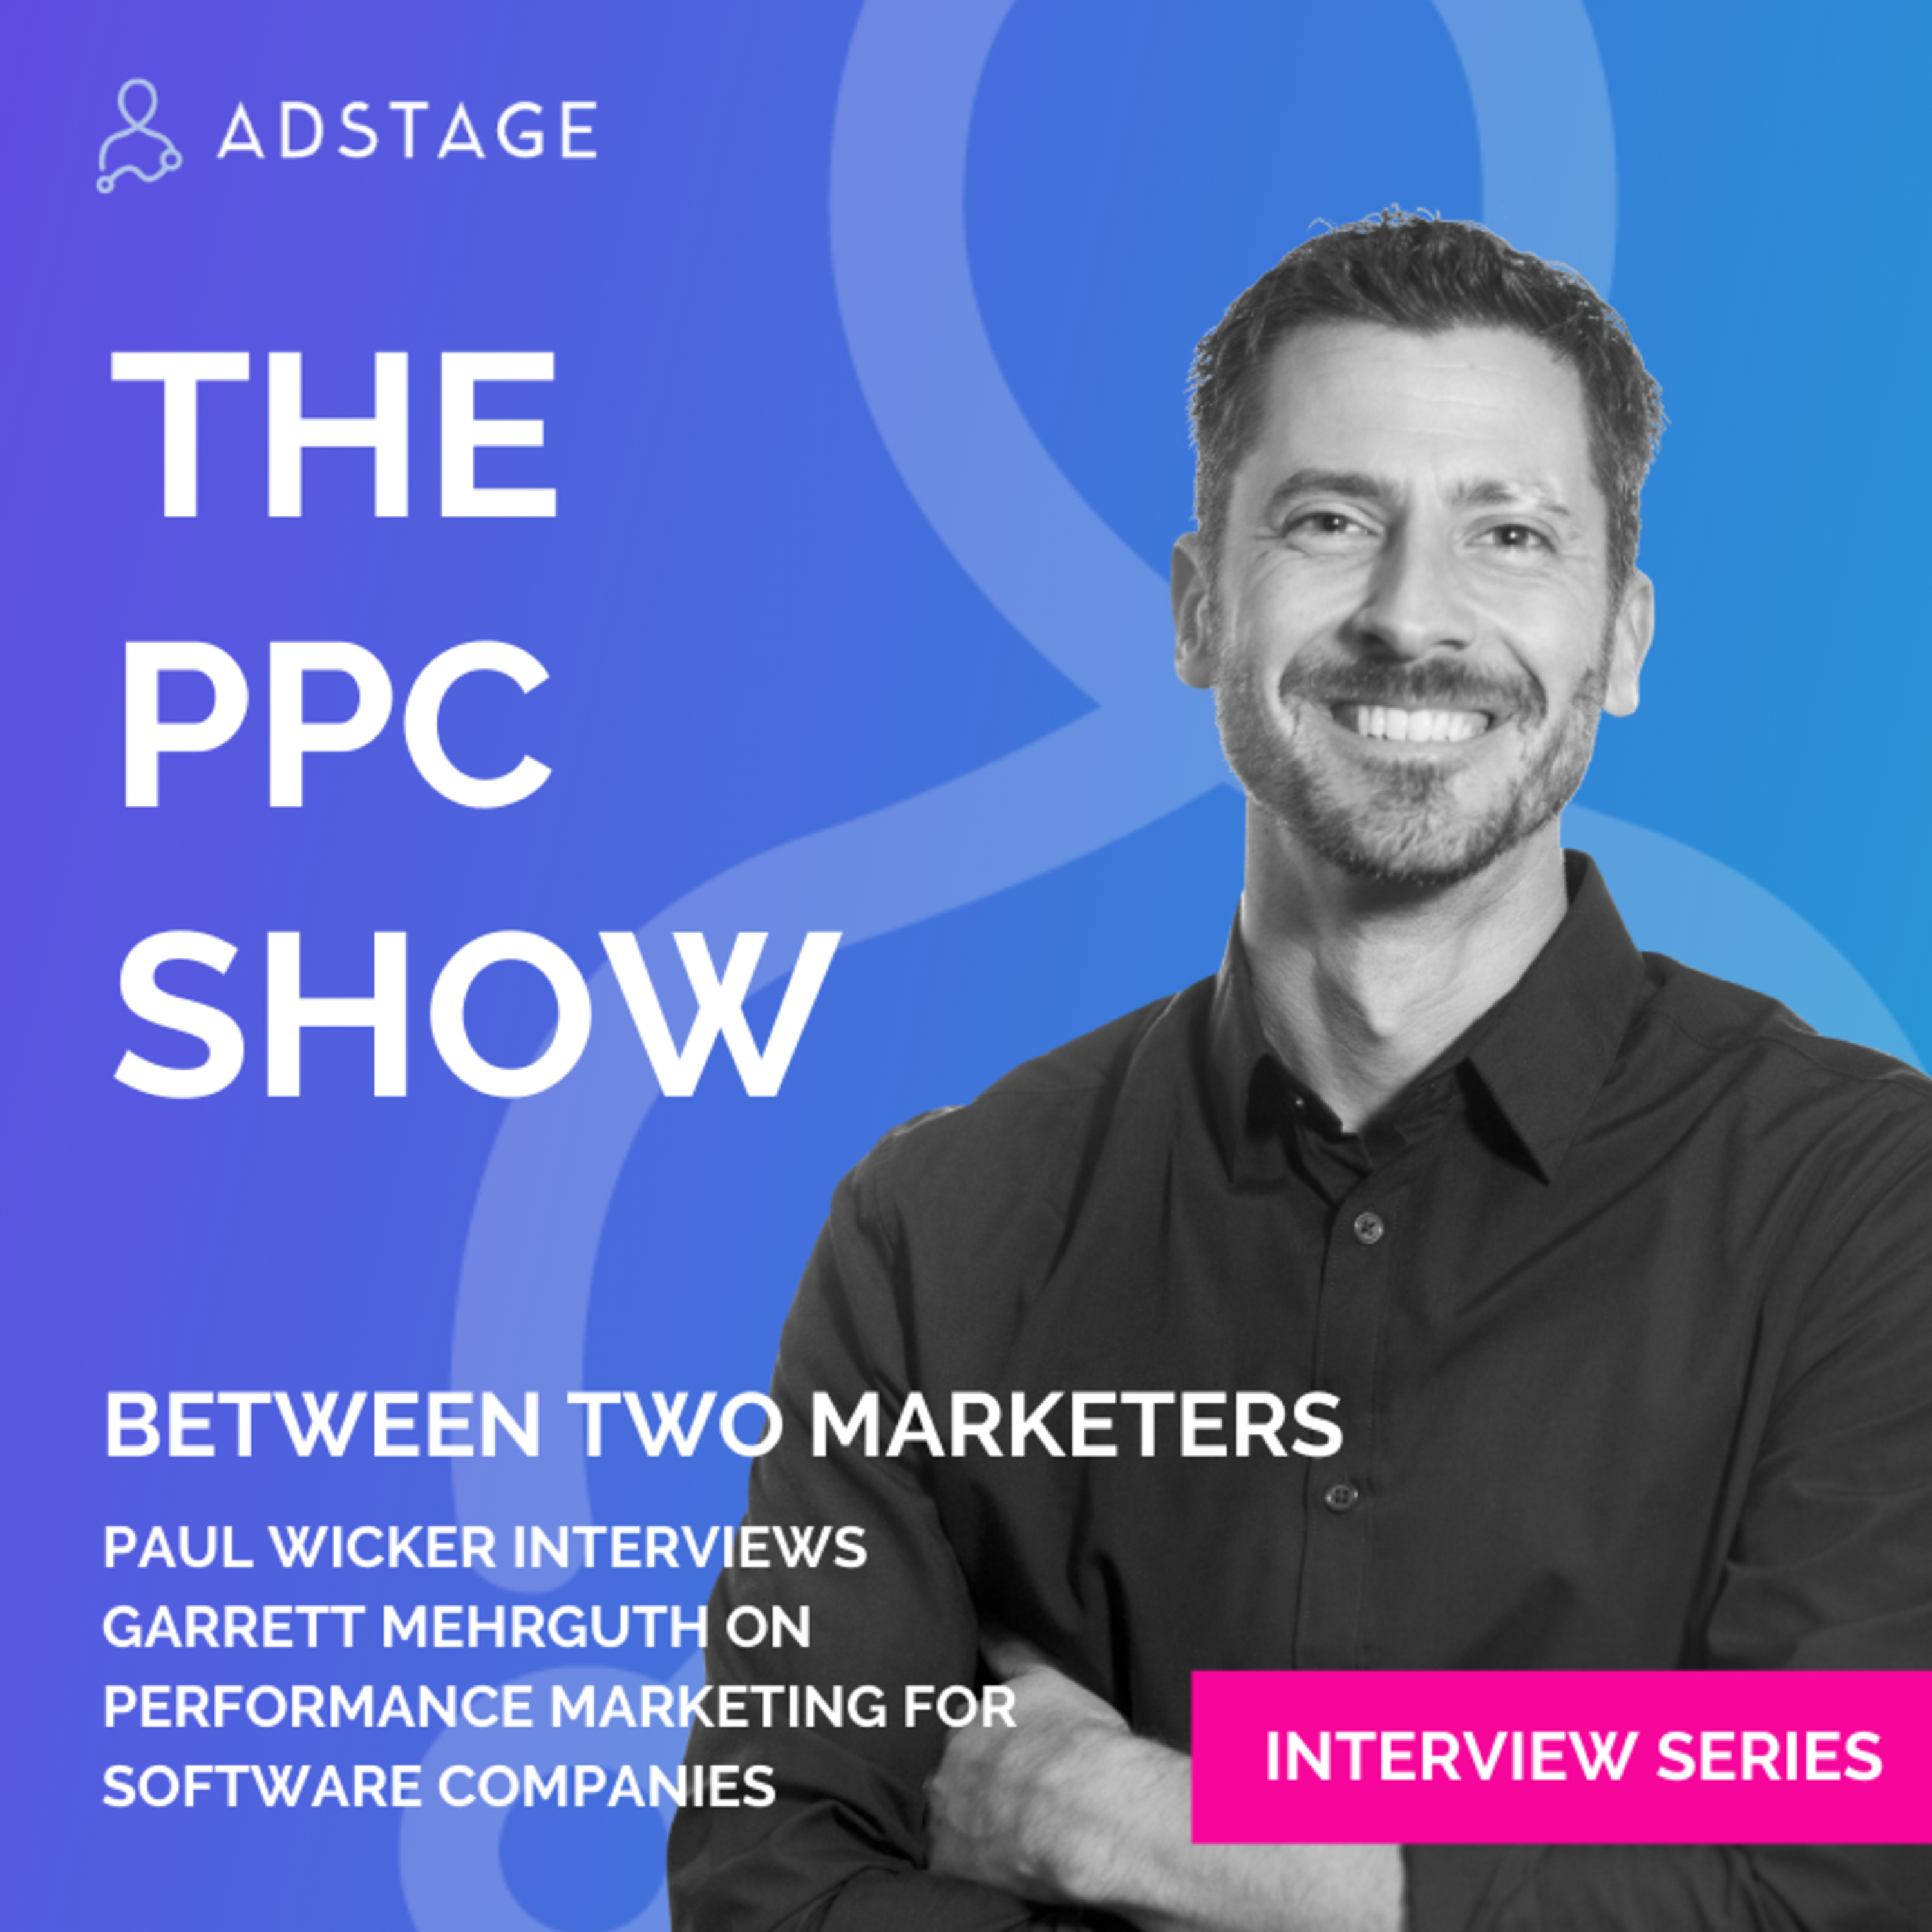 Between Two Marketers: Performance Marketing for Software with Garrett Mehrguth